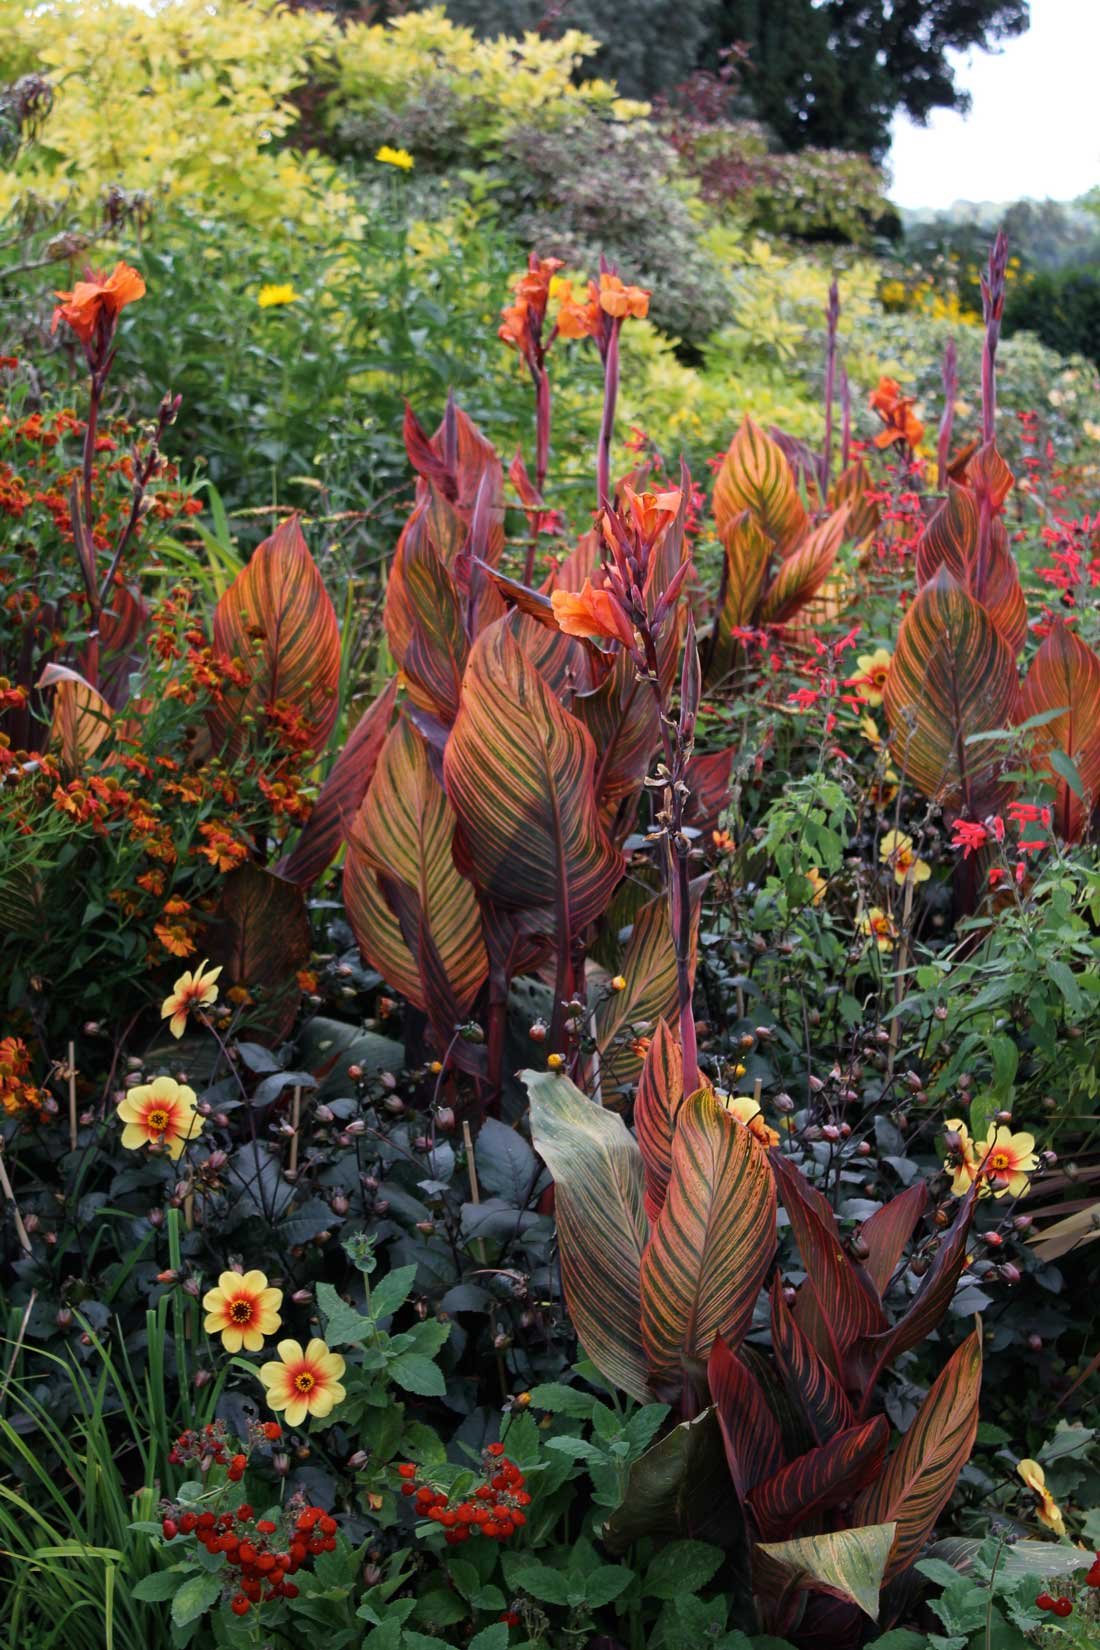 Fresh ideas for growing cannas in your garden longfield gardens fresh ideas for growing cannas in your gardenlongfield gardens izmirmasajfo